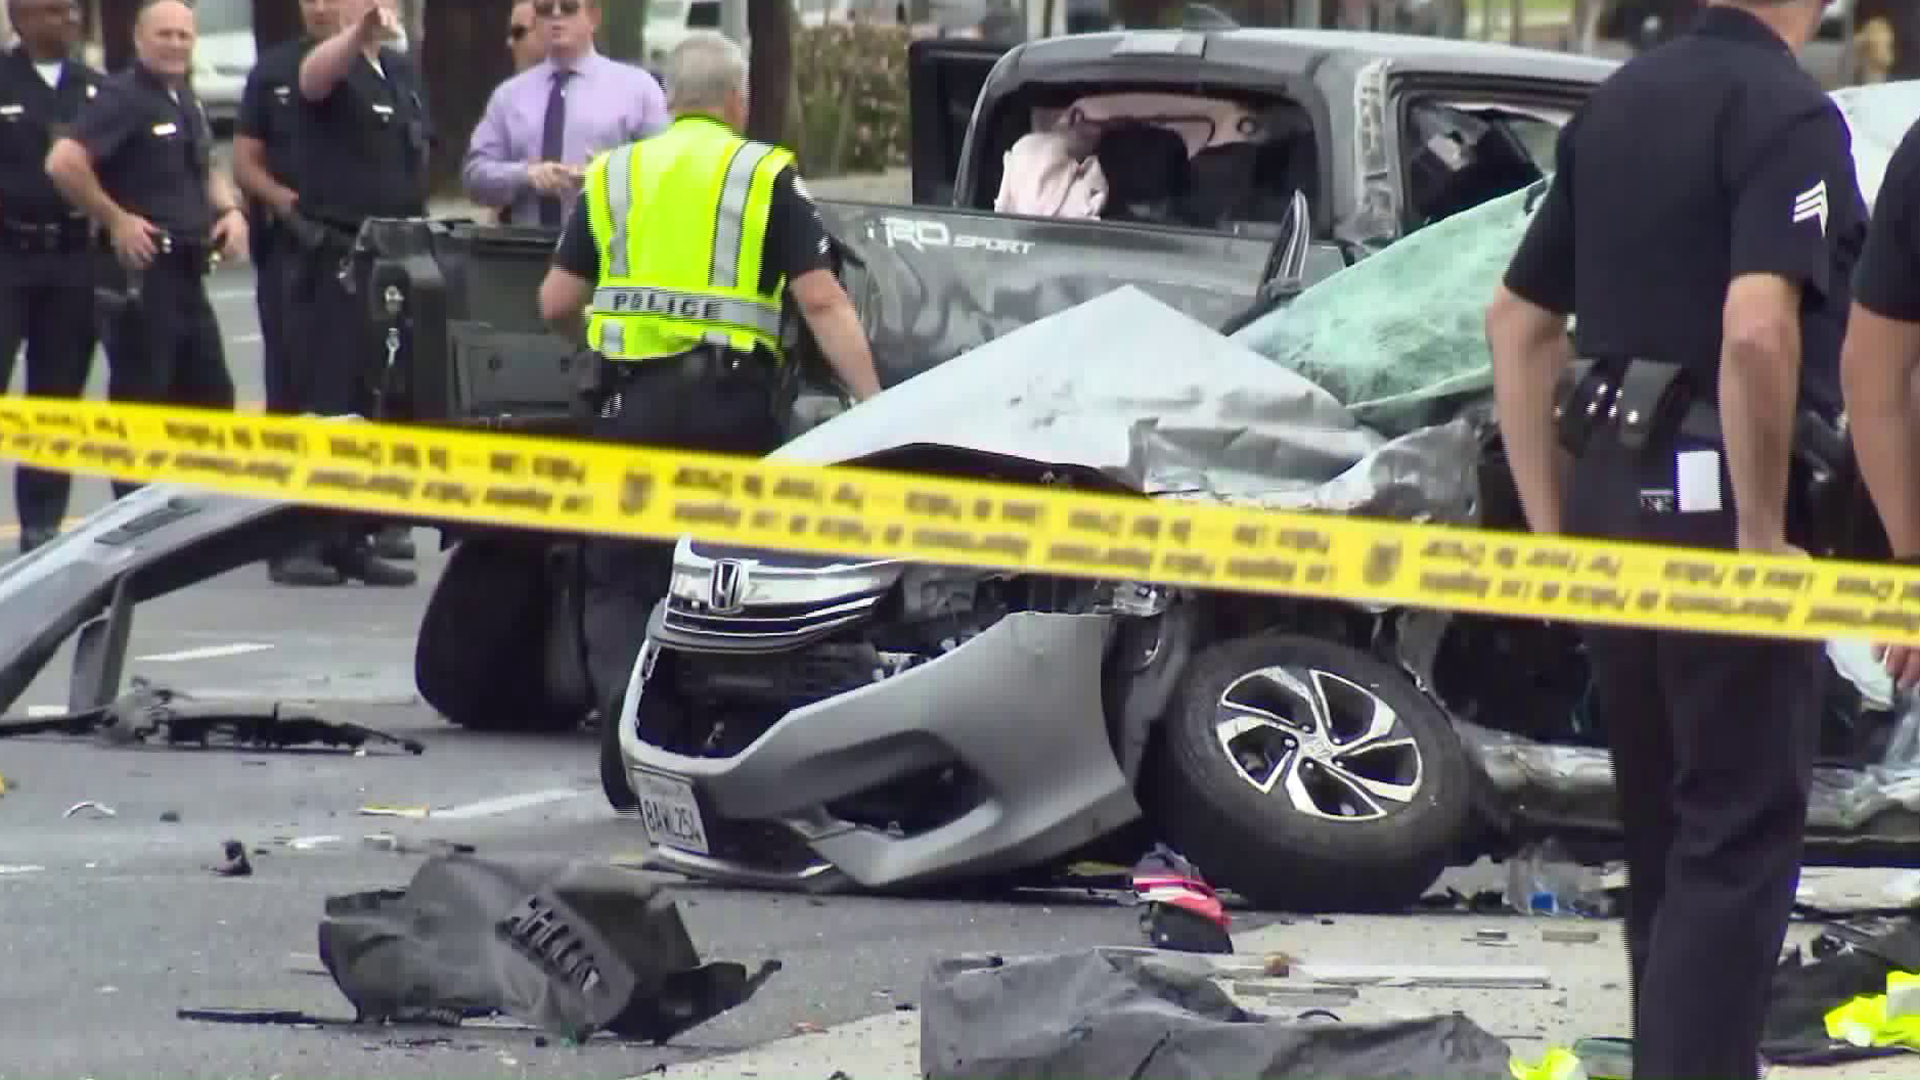 An investigation was underway in Lake Balboa on April 3, 2019, after a stolen pickup truck crashed while trying to evade a traffic stop, police said. (Credit: KTLA)